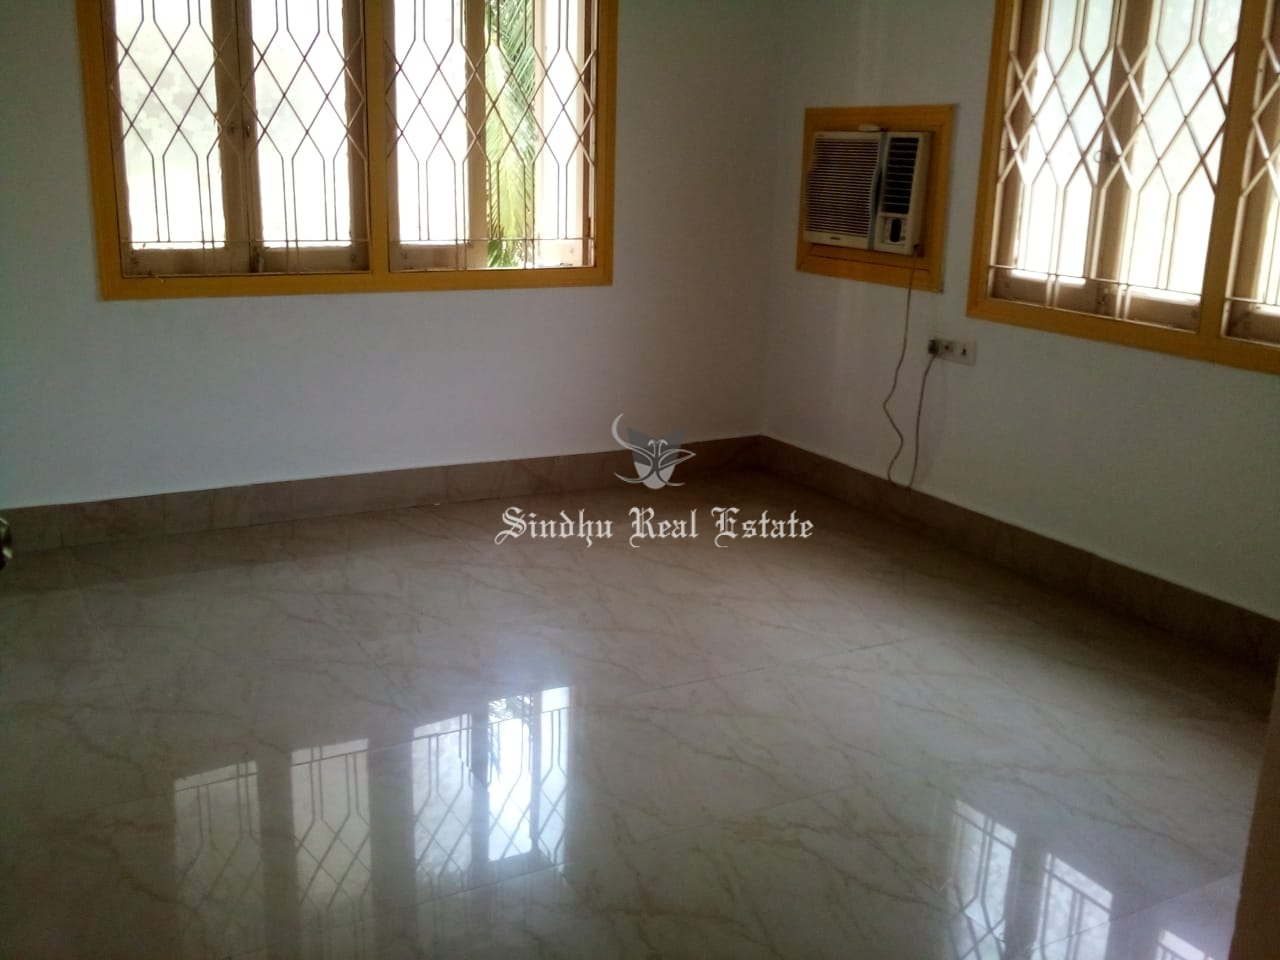 3 bhk semi furnished flat rent in Salt lake sector 3 area